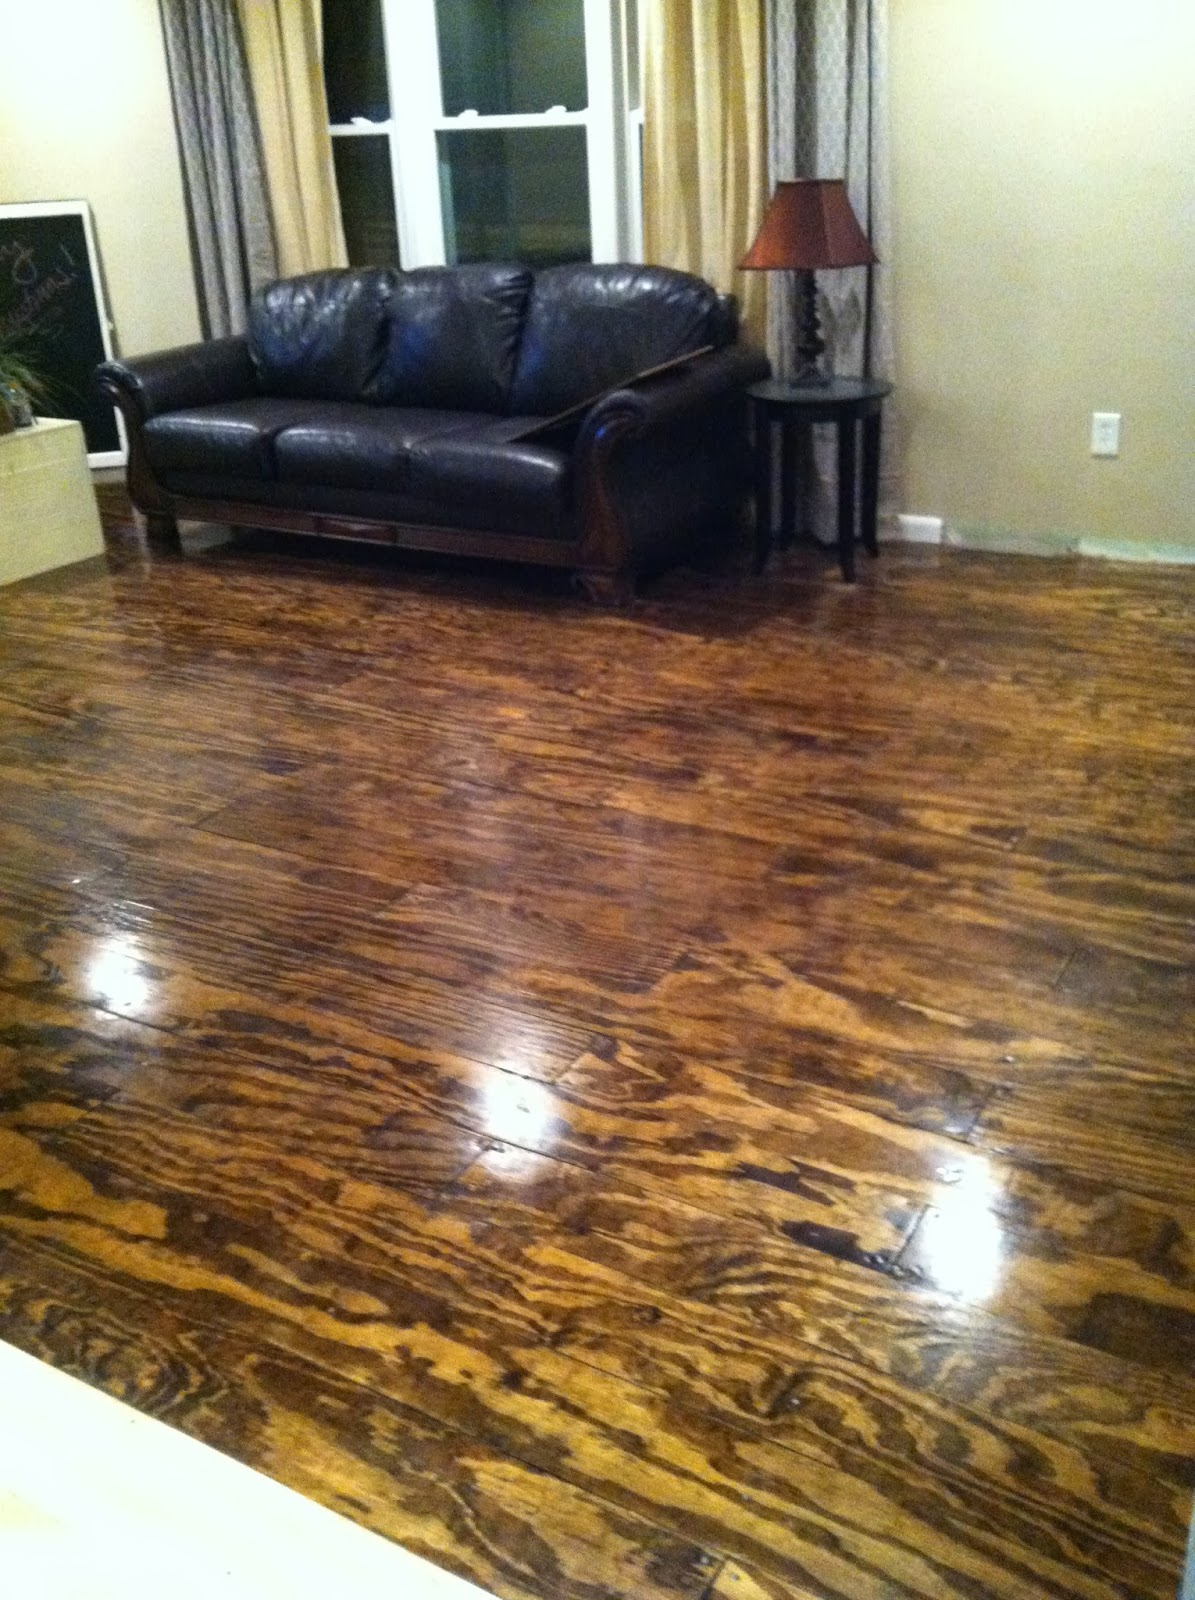 Bohall Blessings Plywood Floor Diy